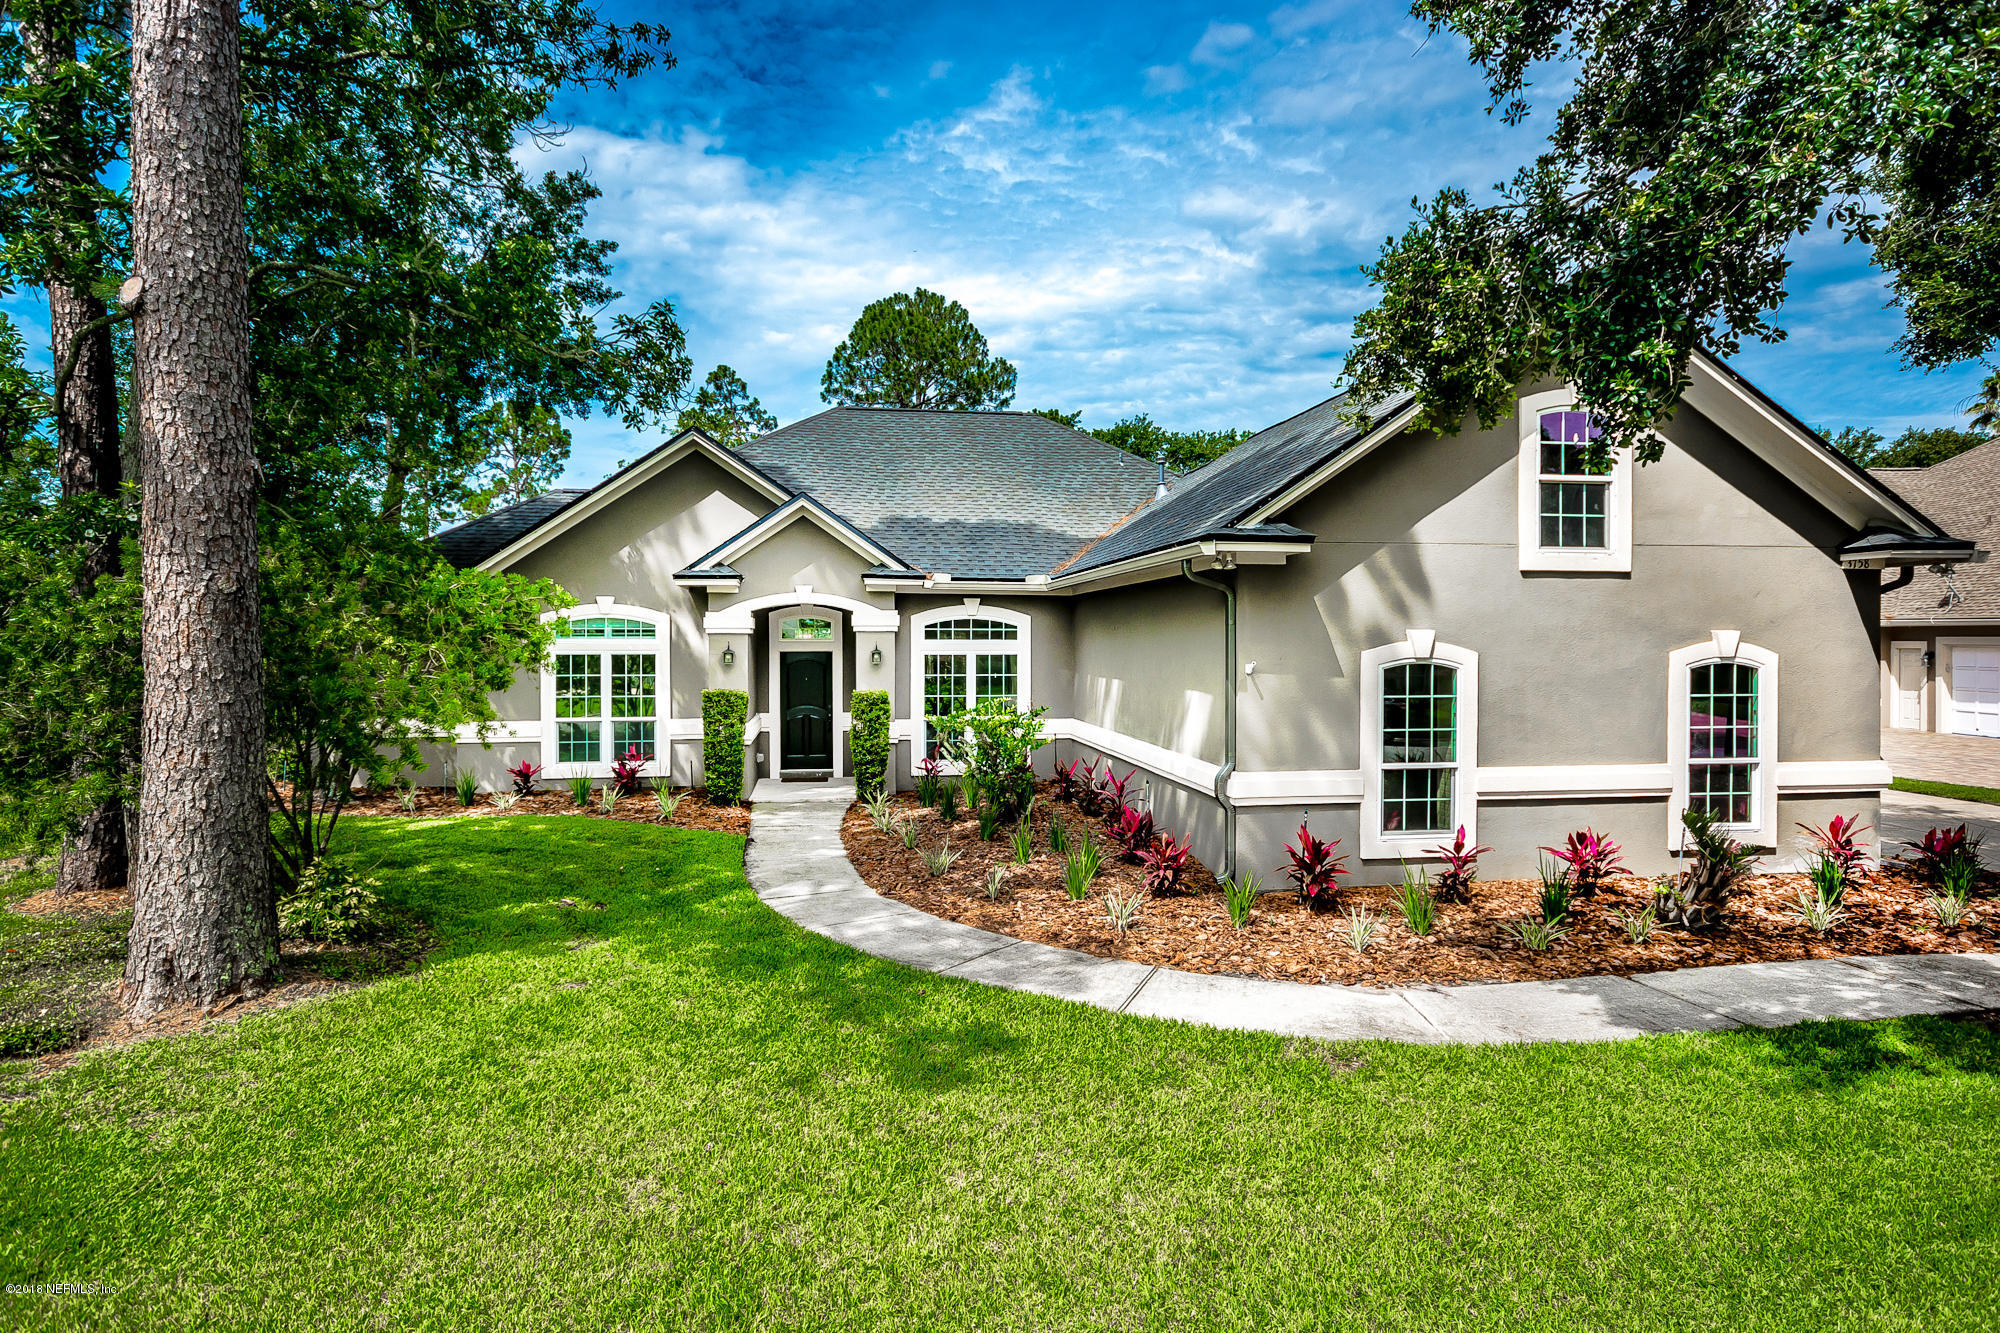 3758 PLANTERS CREEK, JACKSONVILLE, FLORIDA 32224, 5 Bedrooms Bedrooms, ,4 BathroomsBathrooms,Residential - single family,For sale,PLANTERS CREEK,942158